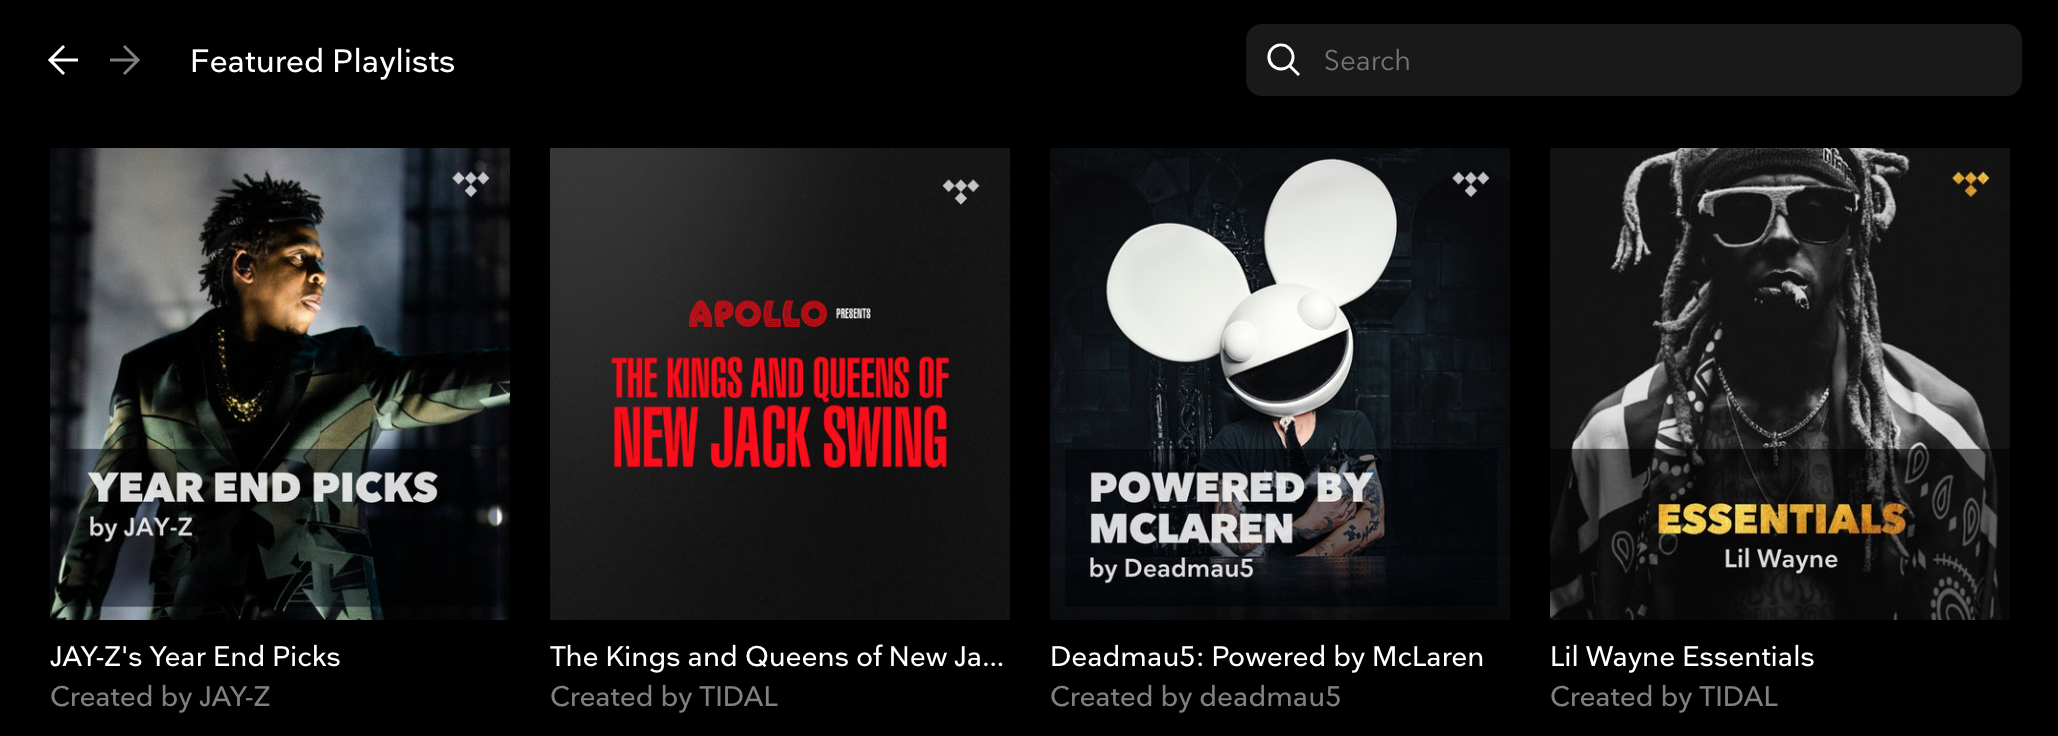 CLICK HERE TO CHECK OUT THE TIDAL PLAYLIST CURATED BY DEADMAU5. THIS SPECIAL COLLECTION FEATURES THE MAU5TRAP Boss's favorite tunes to rock out while driving his McLaren Sportscar!